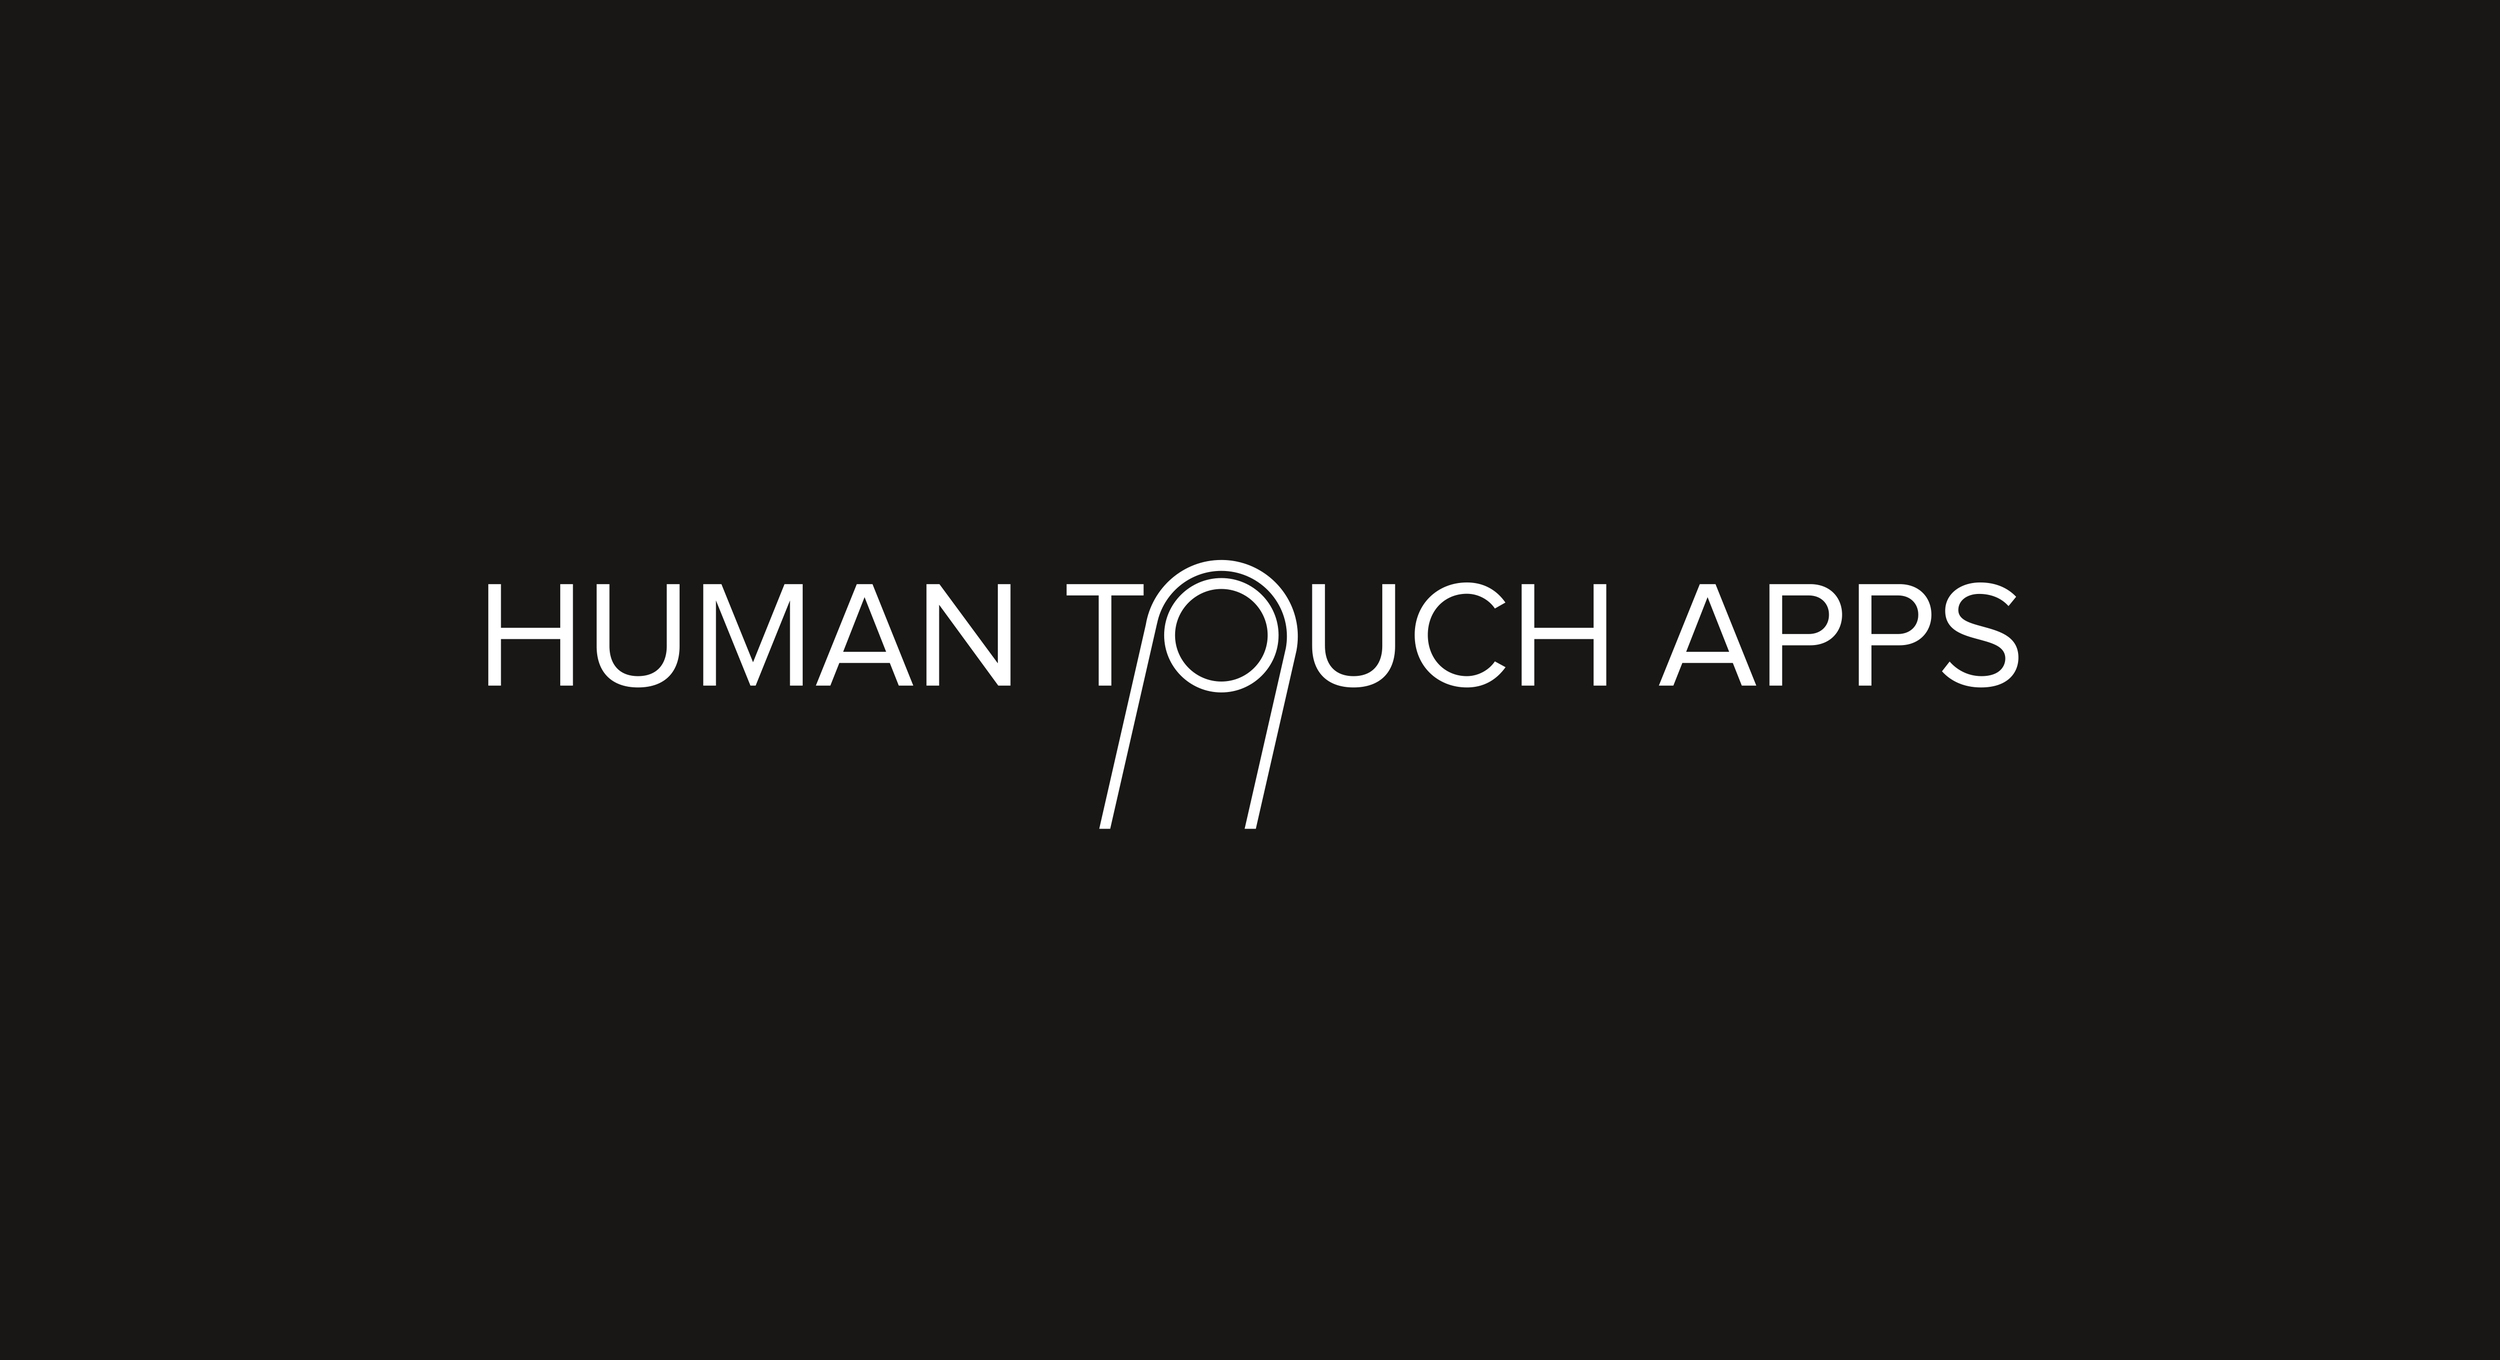 A_HumanTouch_Apps_neg.jpg